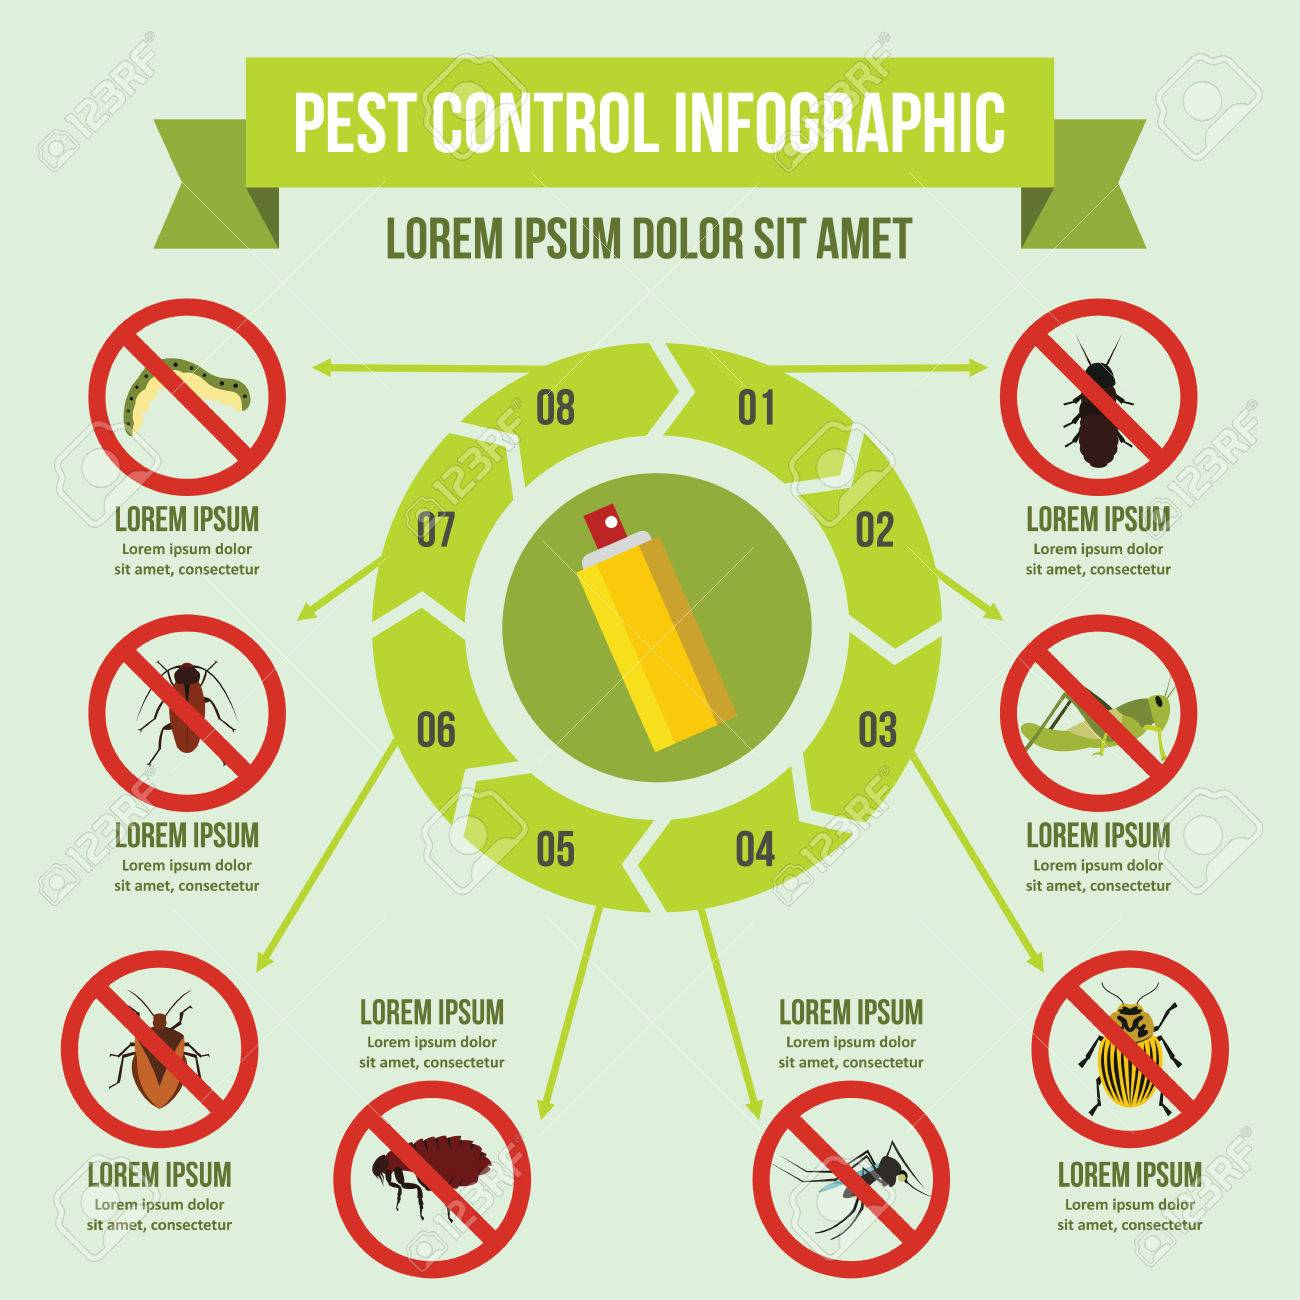 80793372-pest-control-infographic-concep